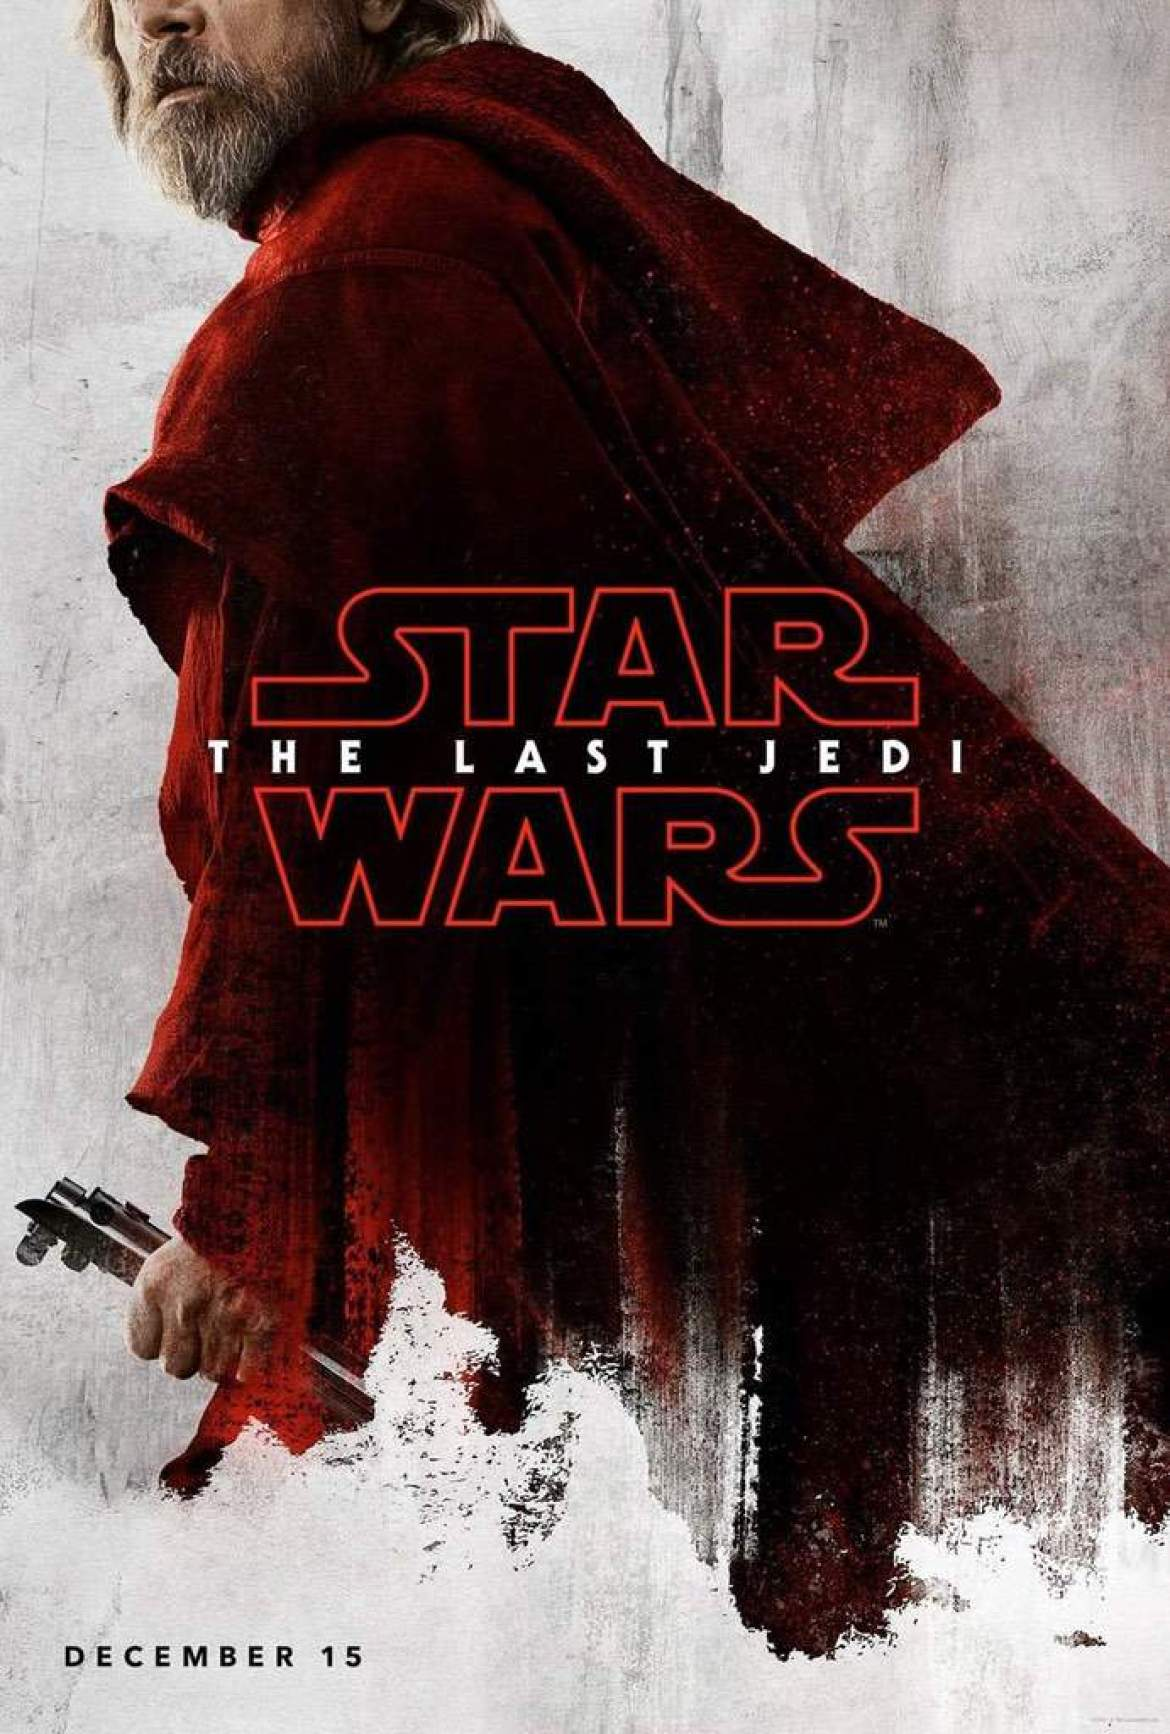 IMG 9260 - Six Star Wars: The Last Jedi character posters